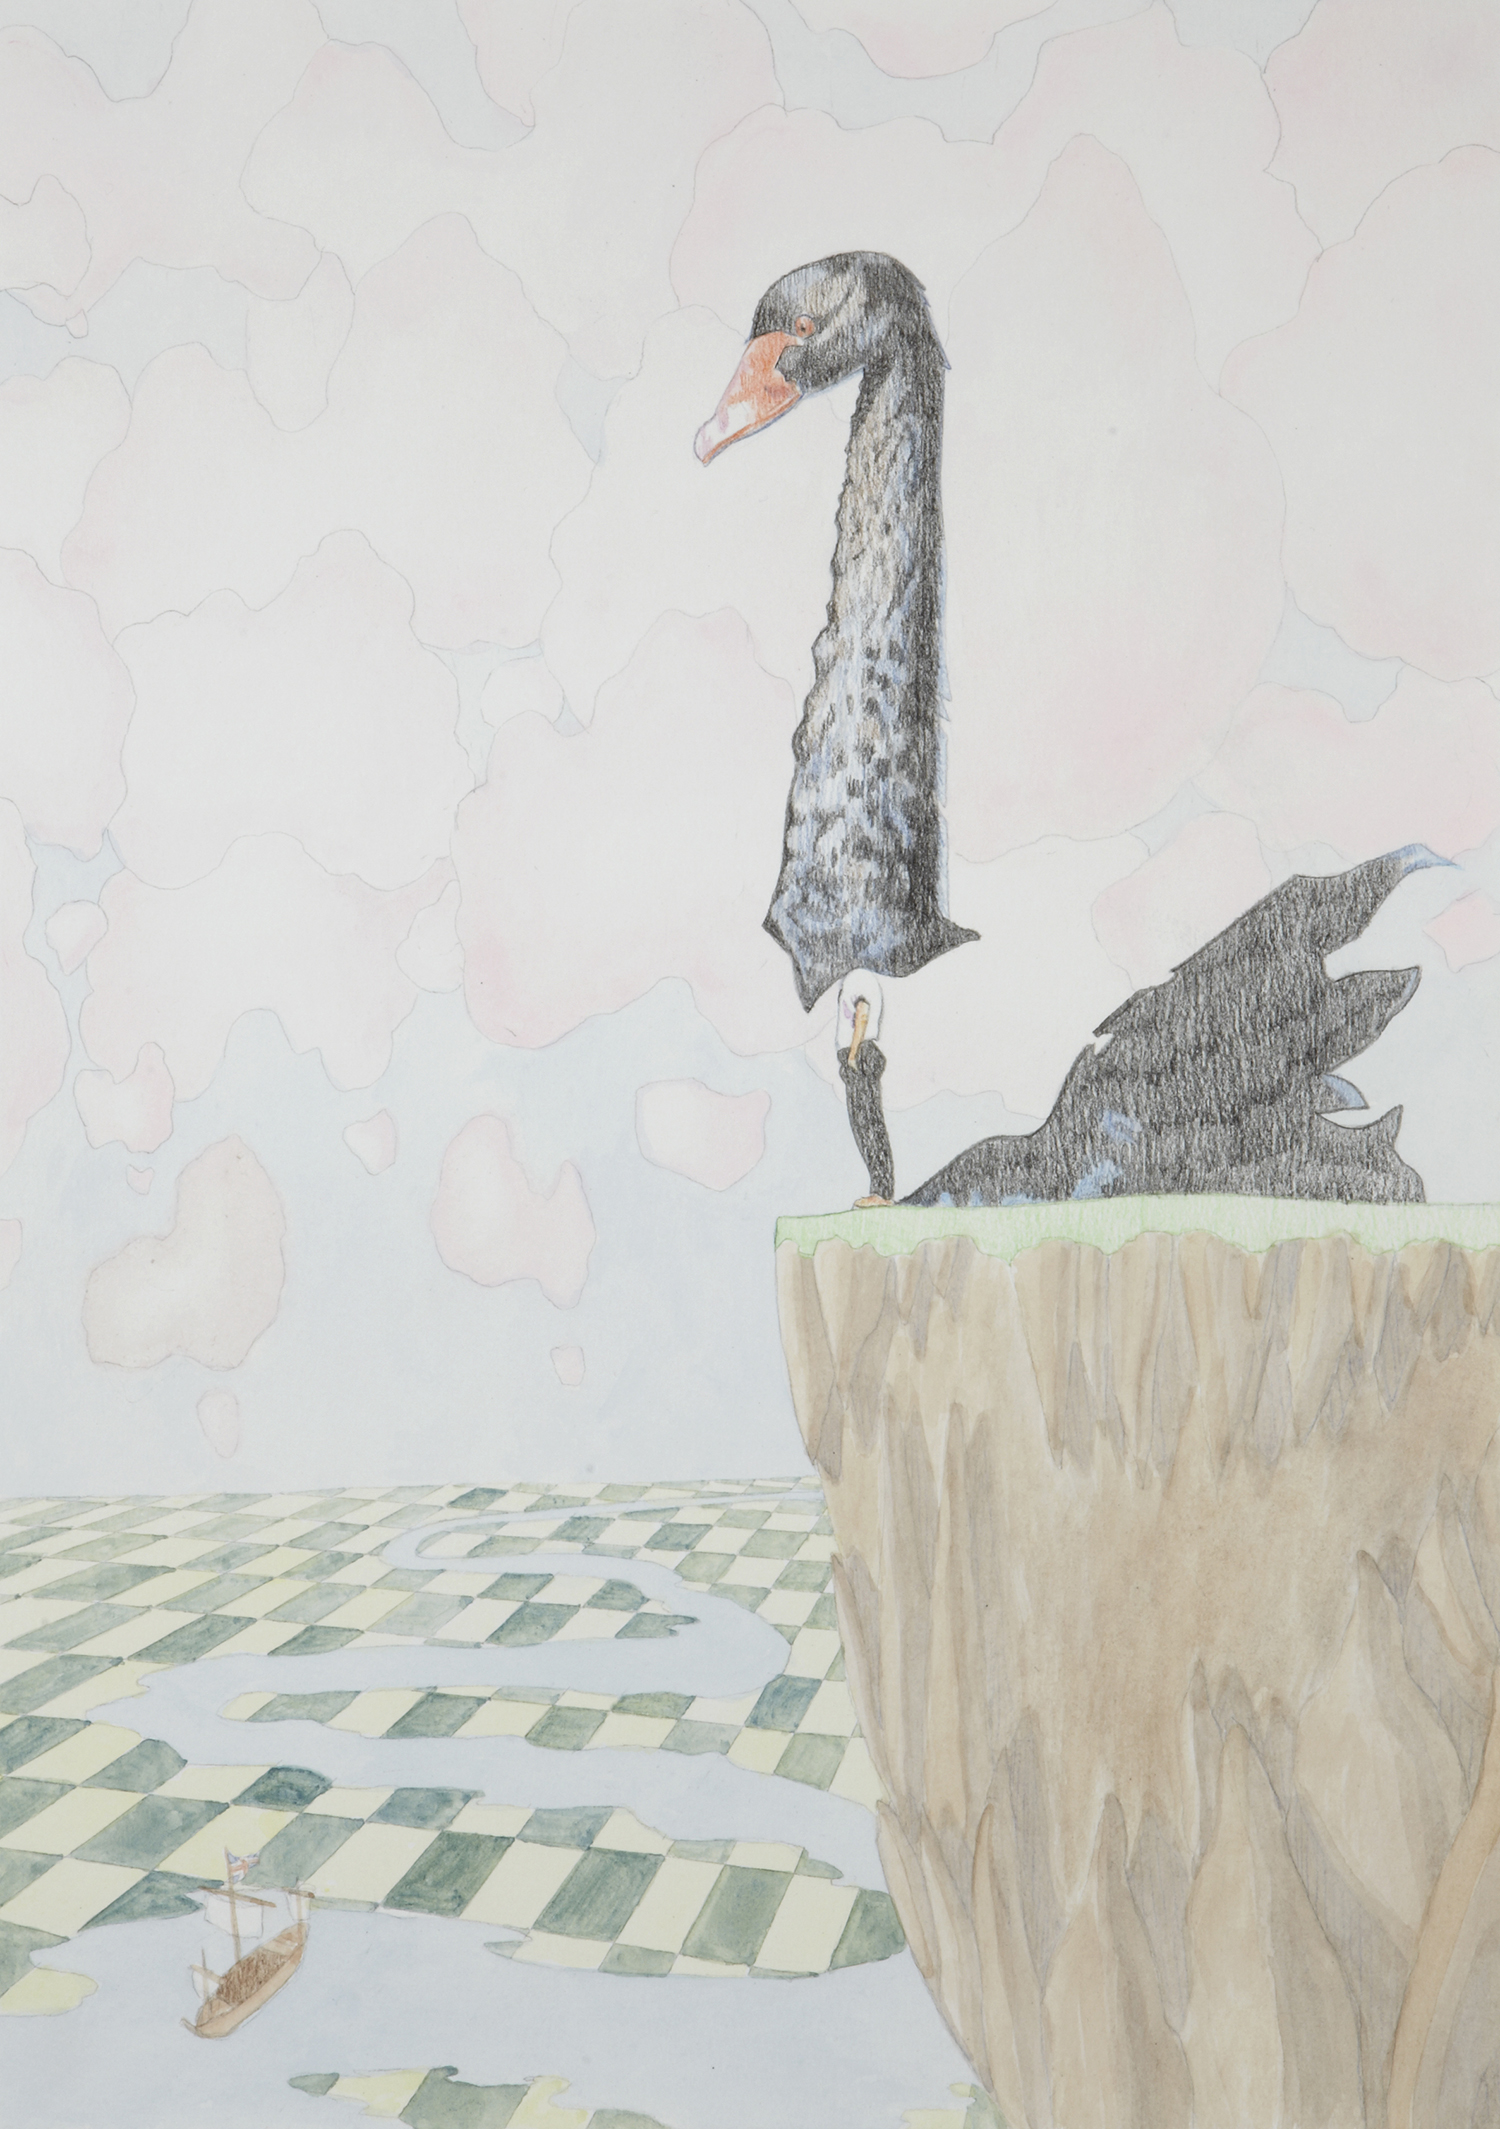 Swan Song #3, 2012, Watercolour and pencil on paper, 29.7 x 42.0 cm, Photo: Sam Scoufos